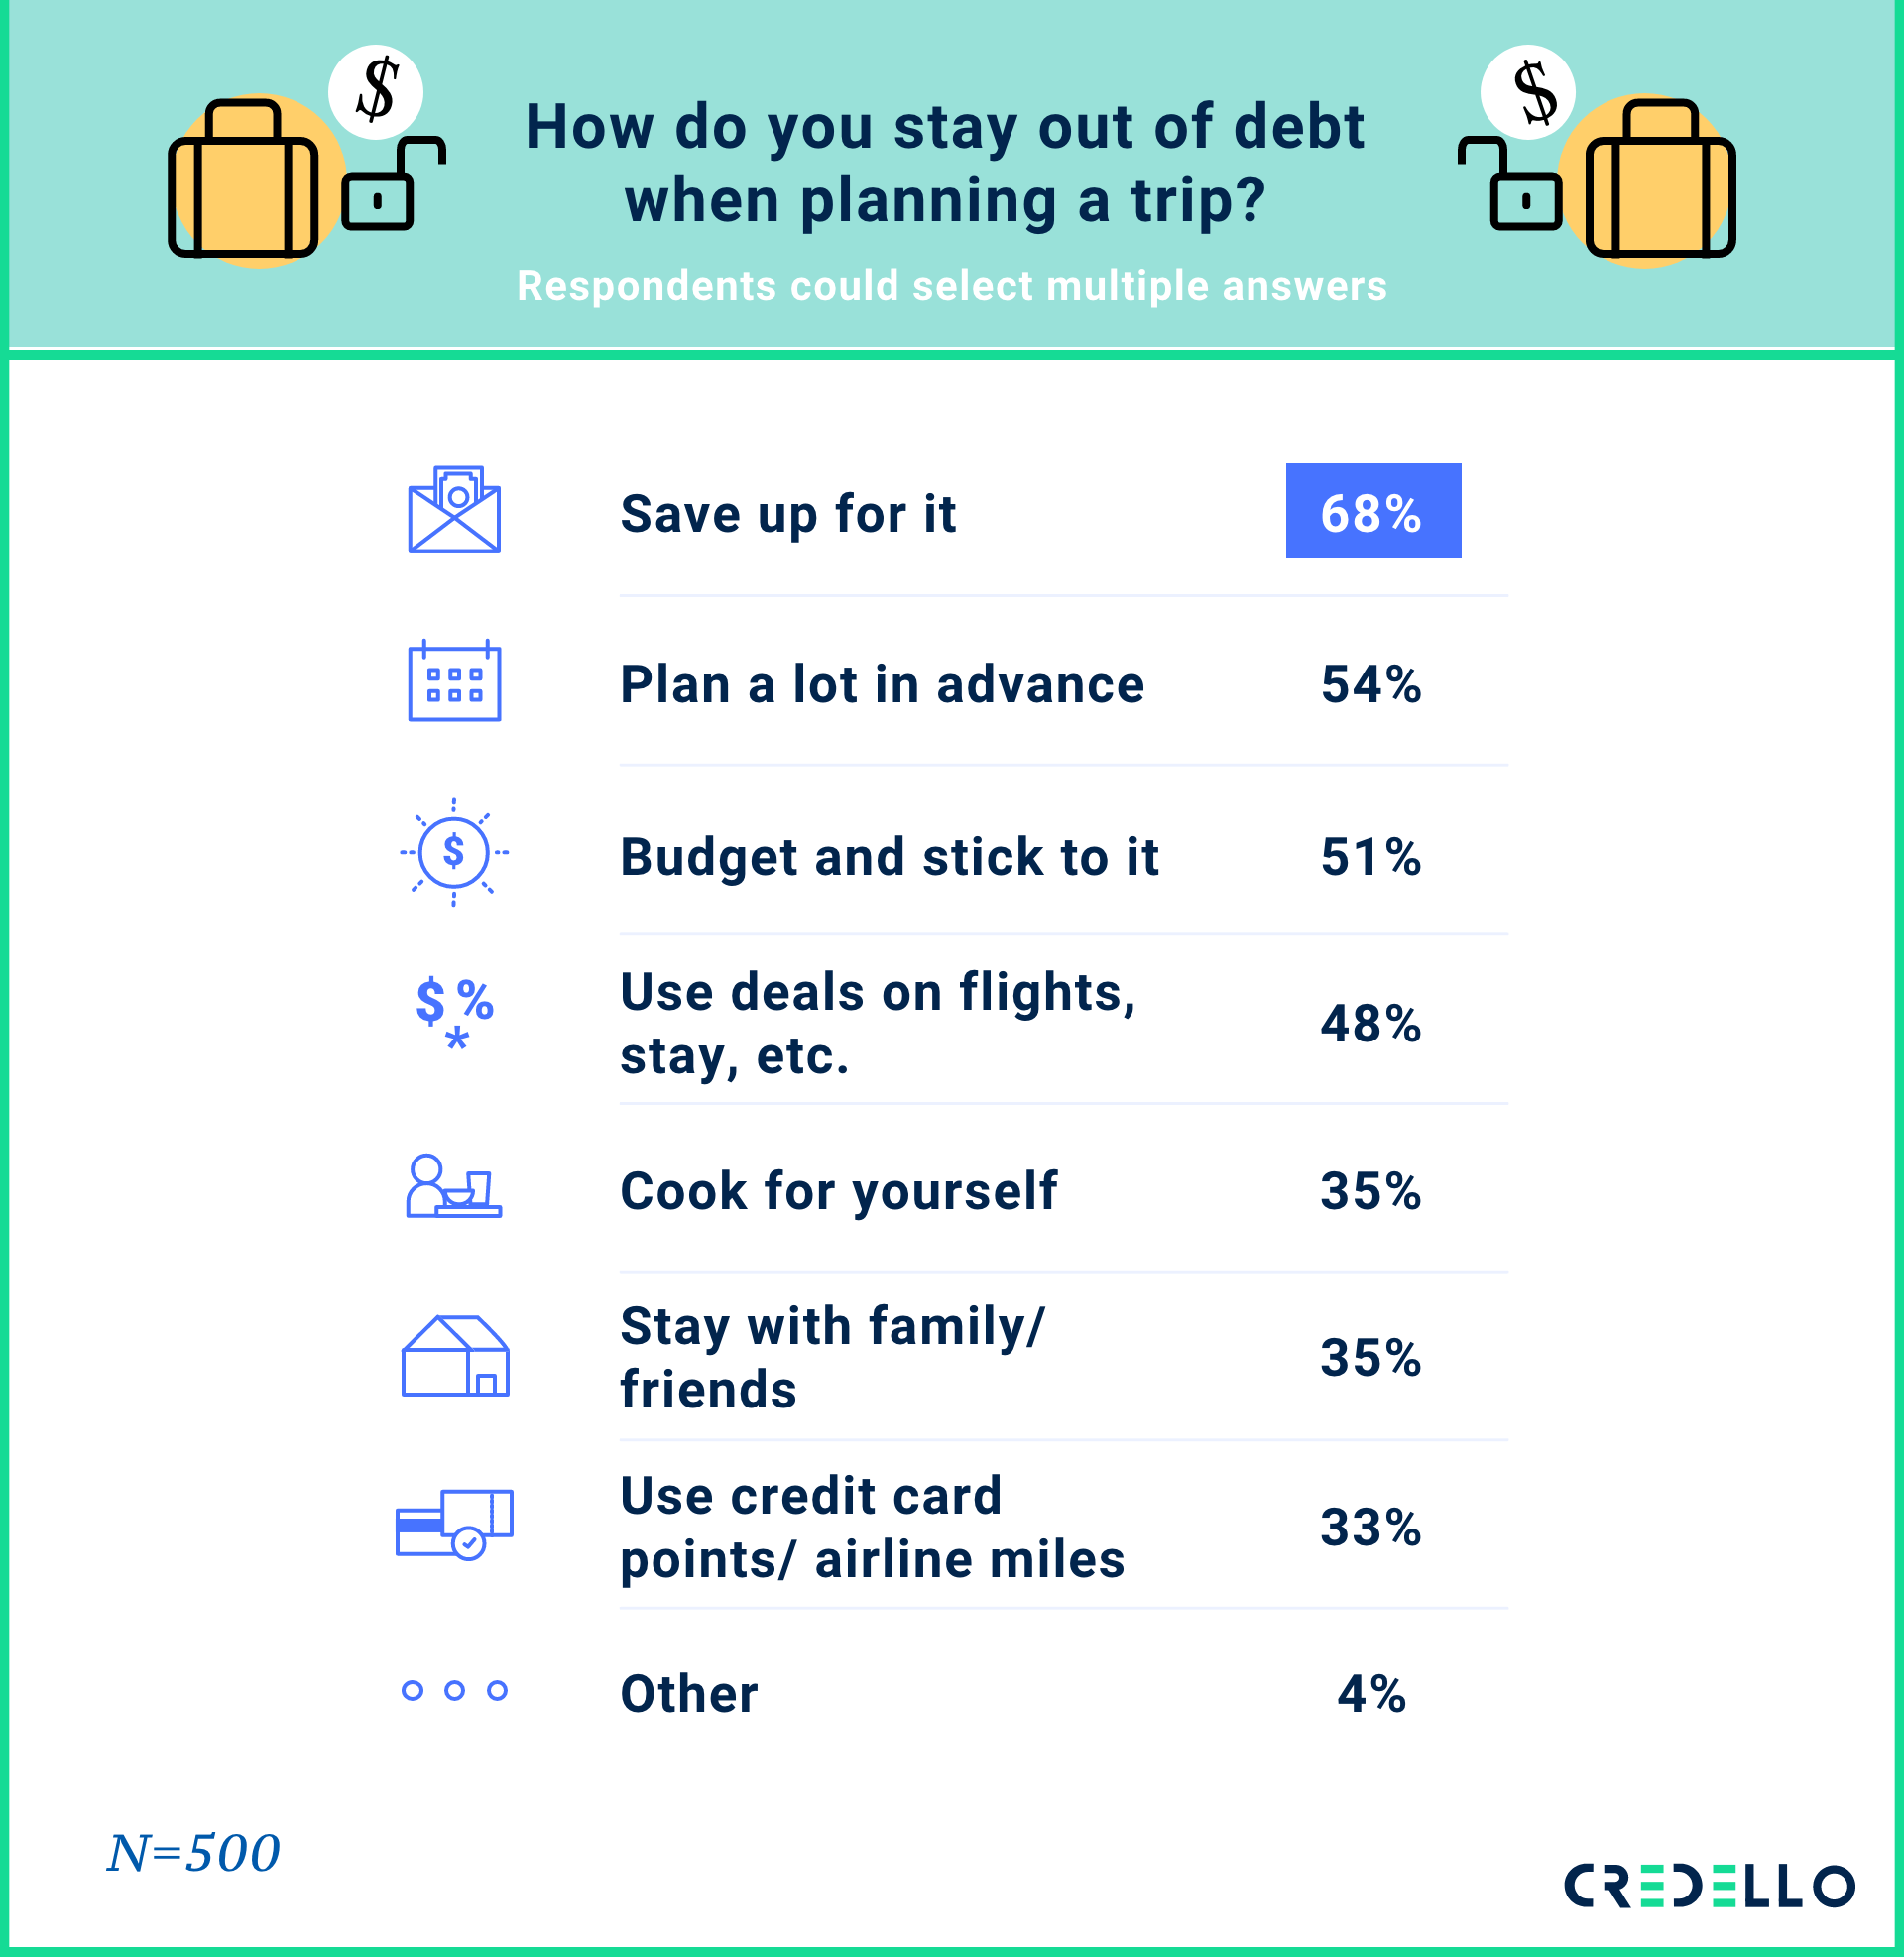 how do you stay out of debt when planning a trip